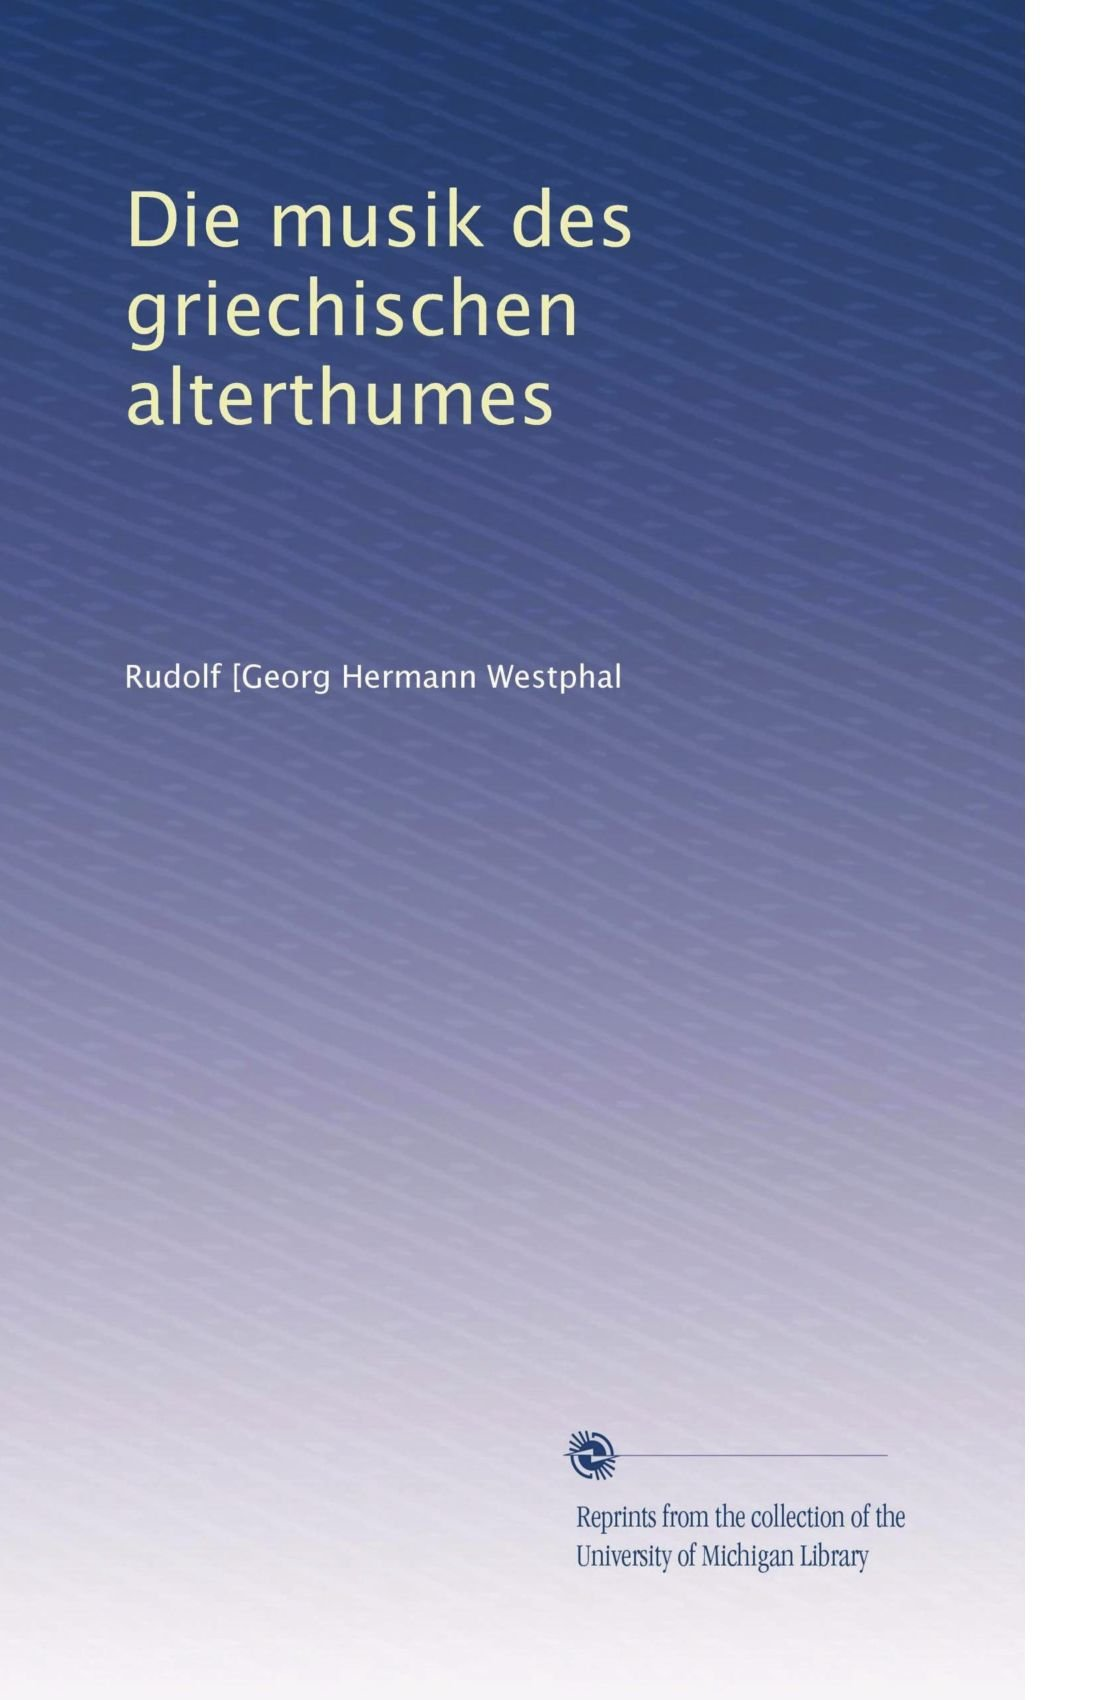 Download Die musik des griechischen alterthumes (German Edition) ebook